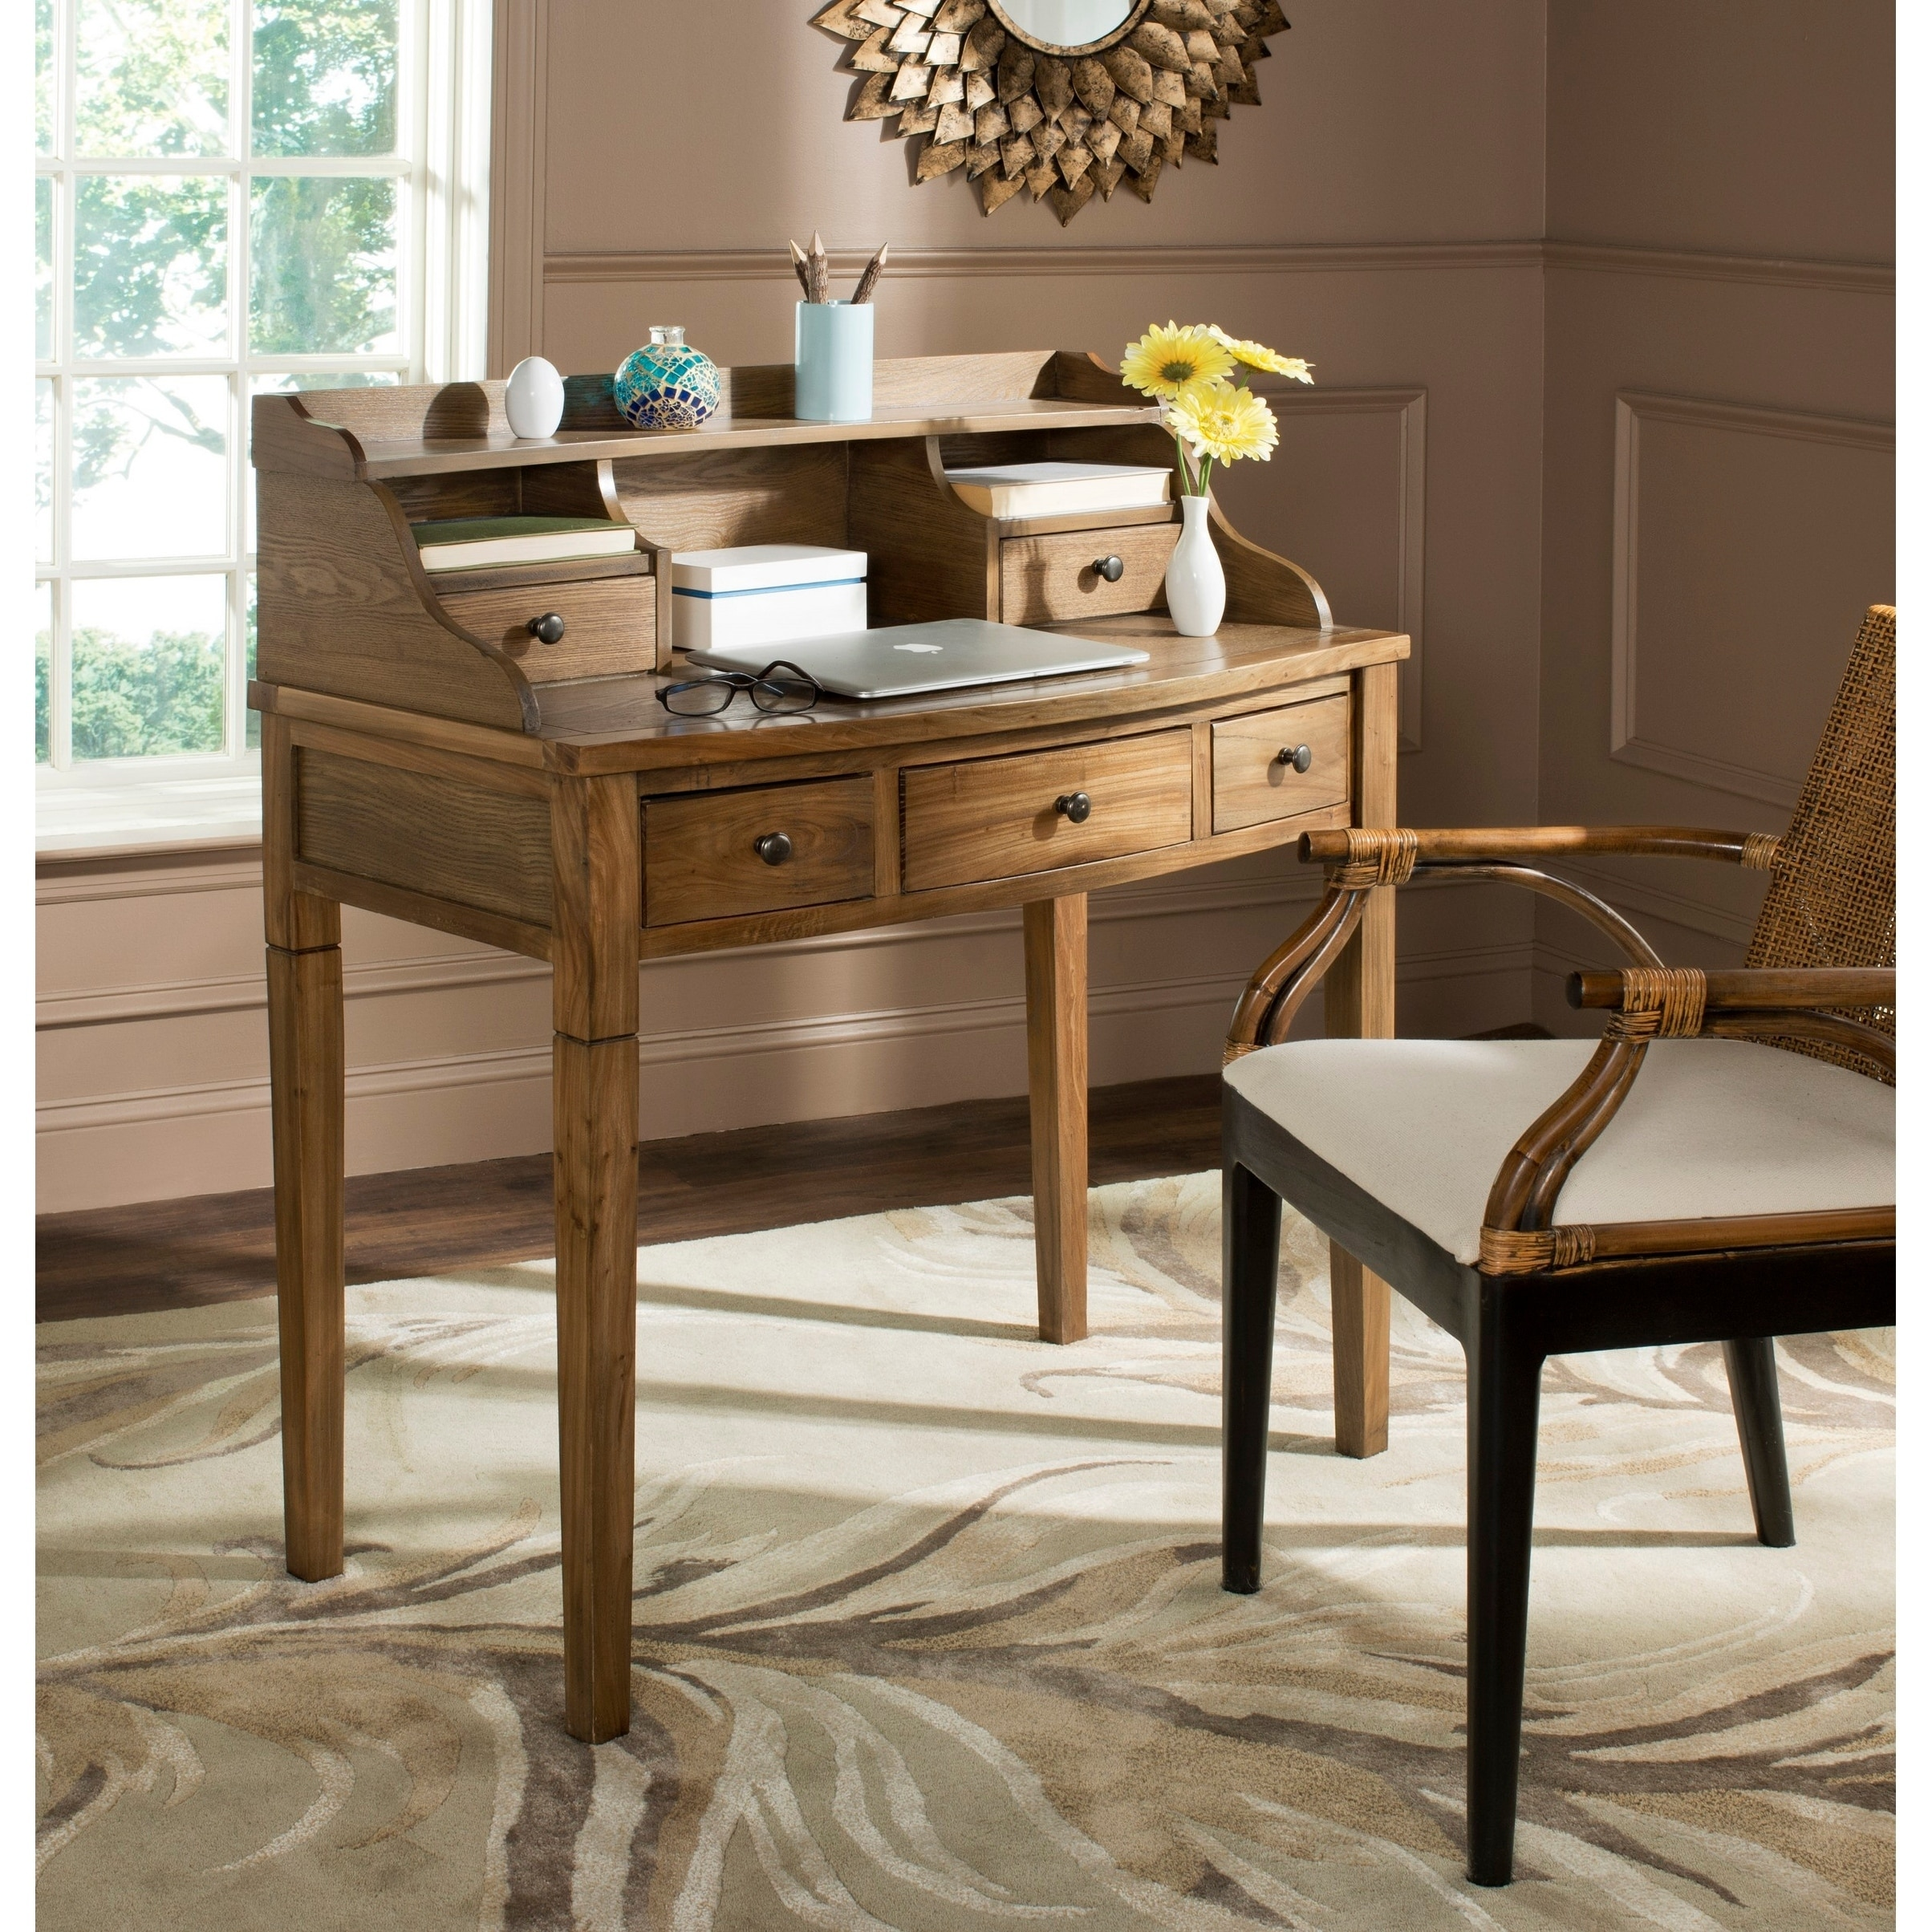 Safavieh Tiverton Oak Writing Desk, Brown, Size Small